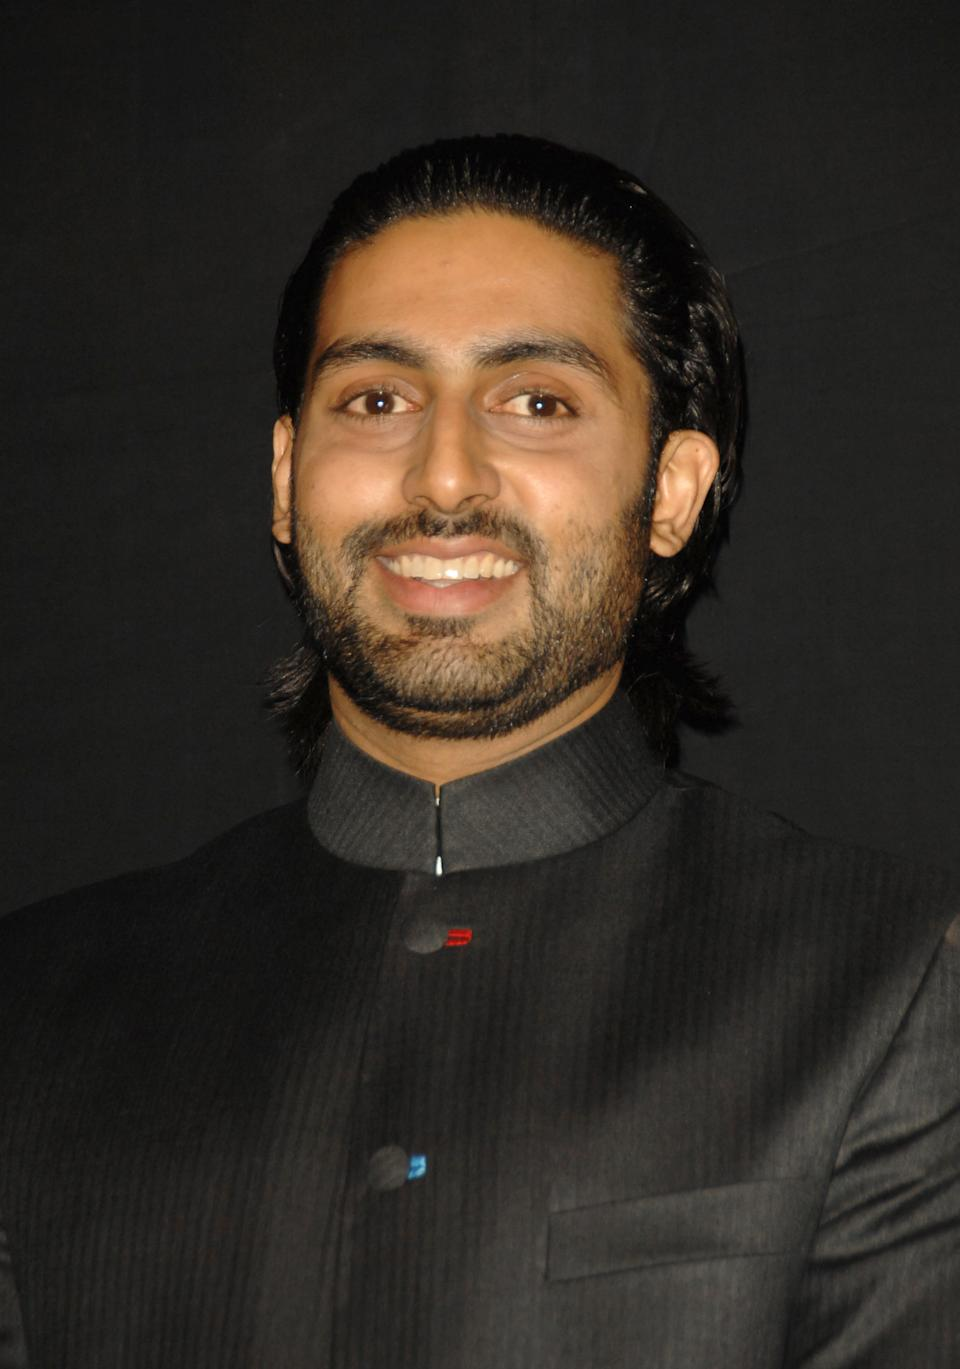 Abhishek Bachchan Jr Bachchan also surprised stylists and the masses when he donned the hairband look. It was an unusual for the actor and was followed by his fans too.